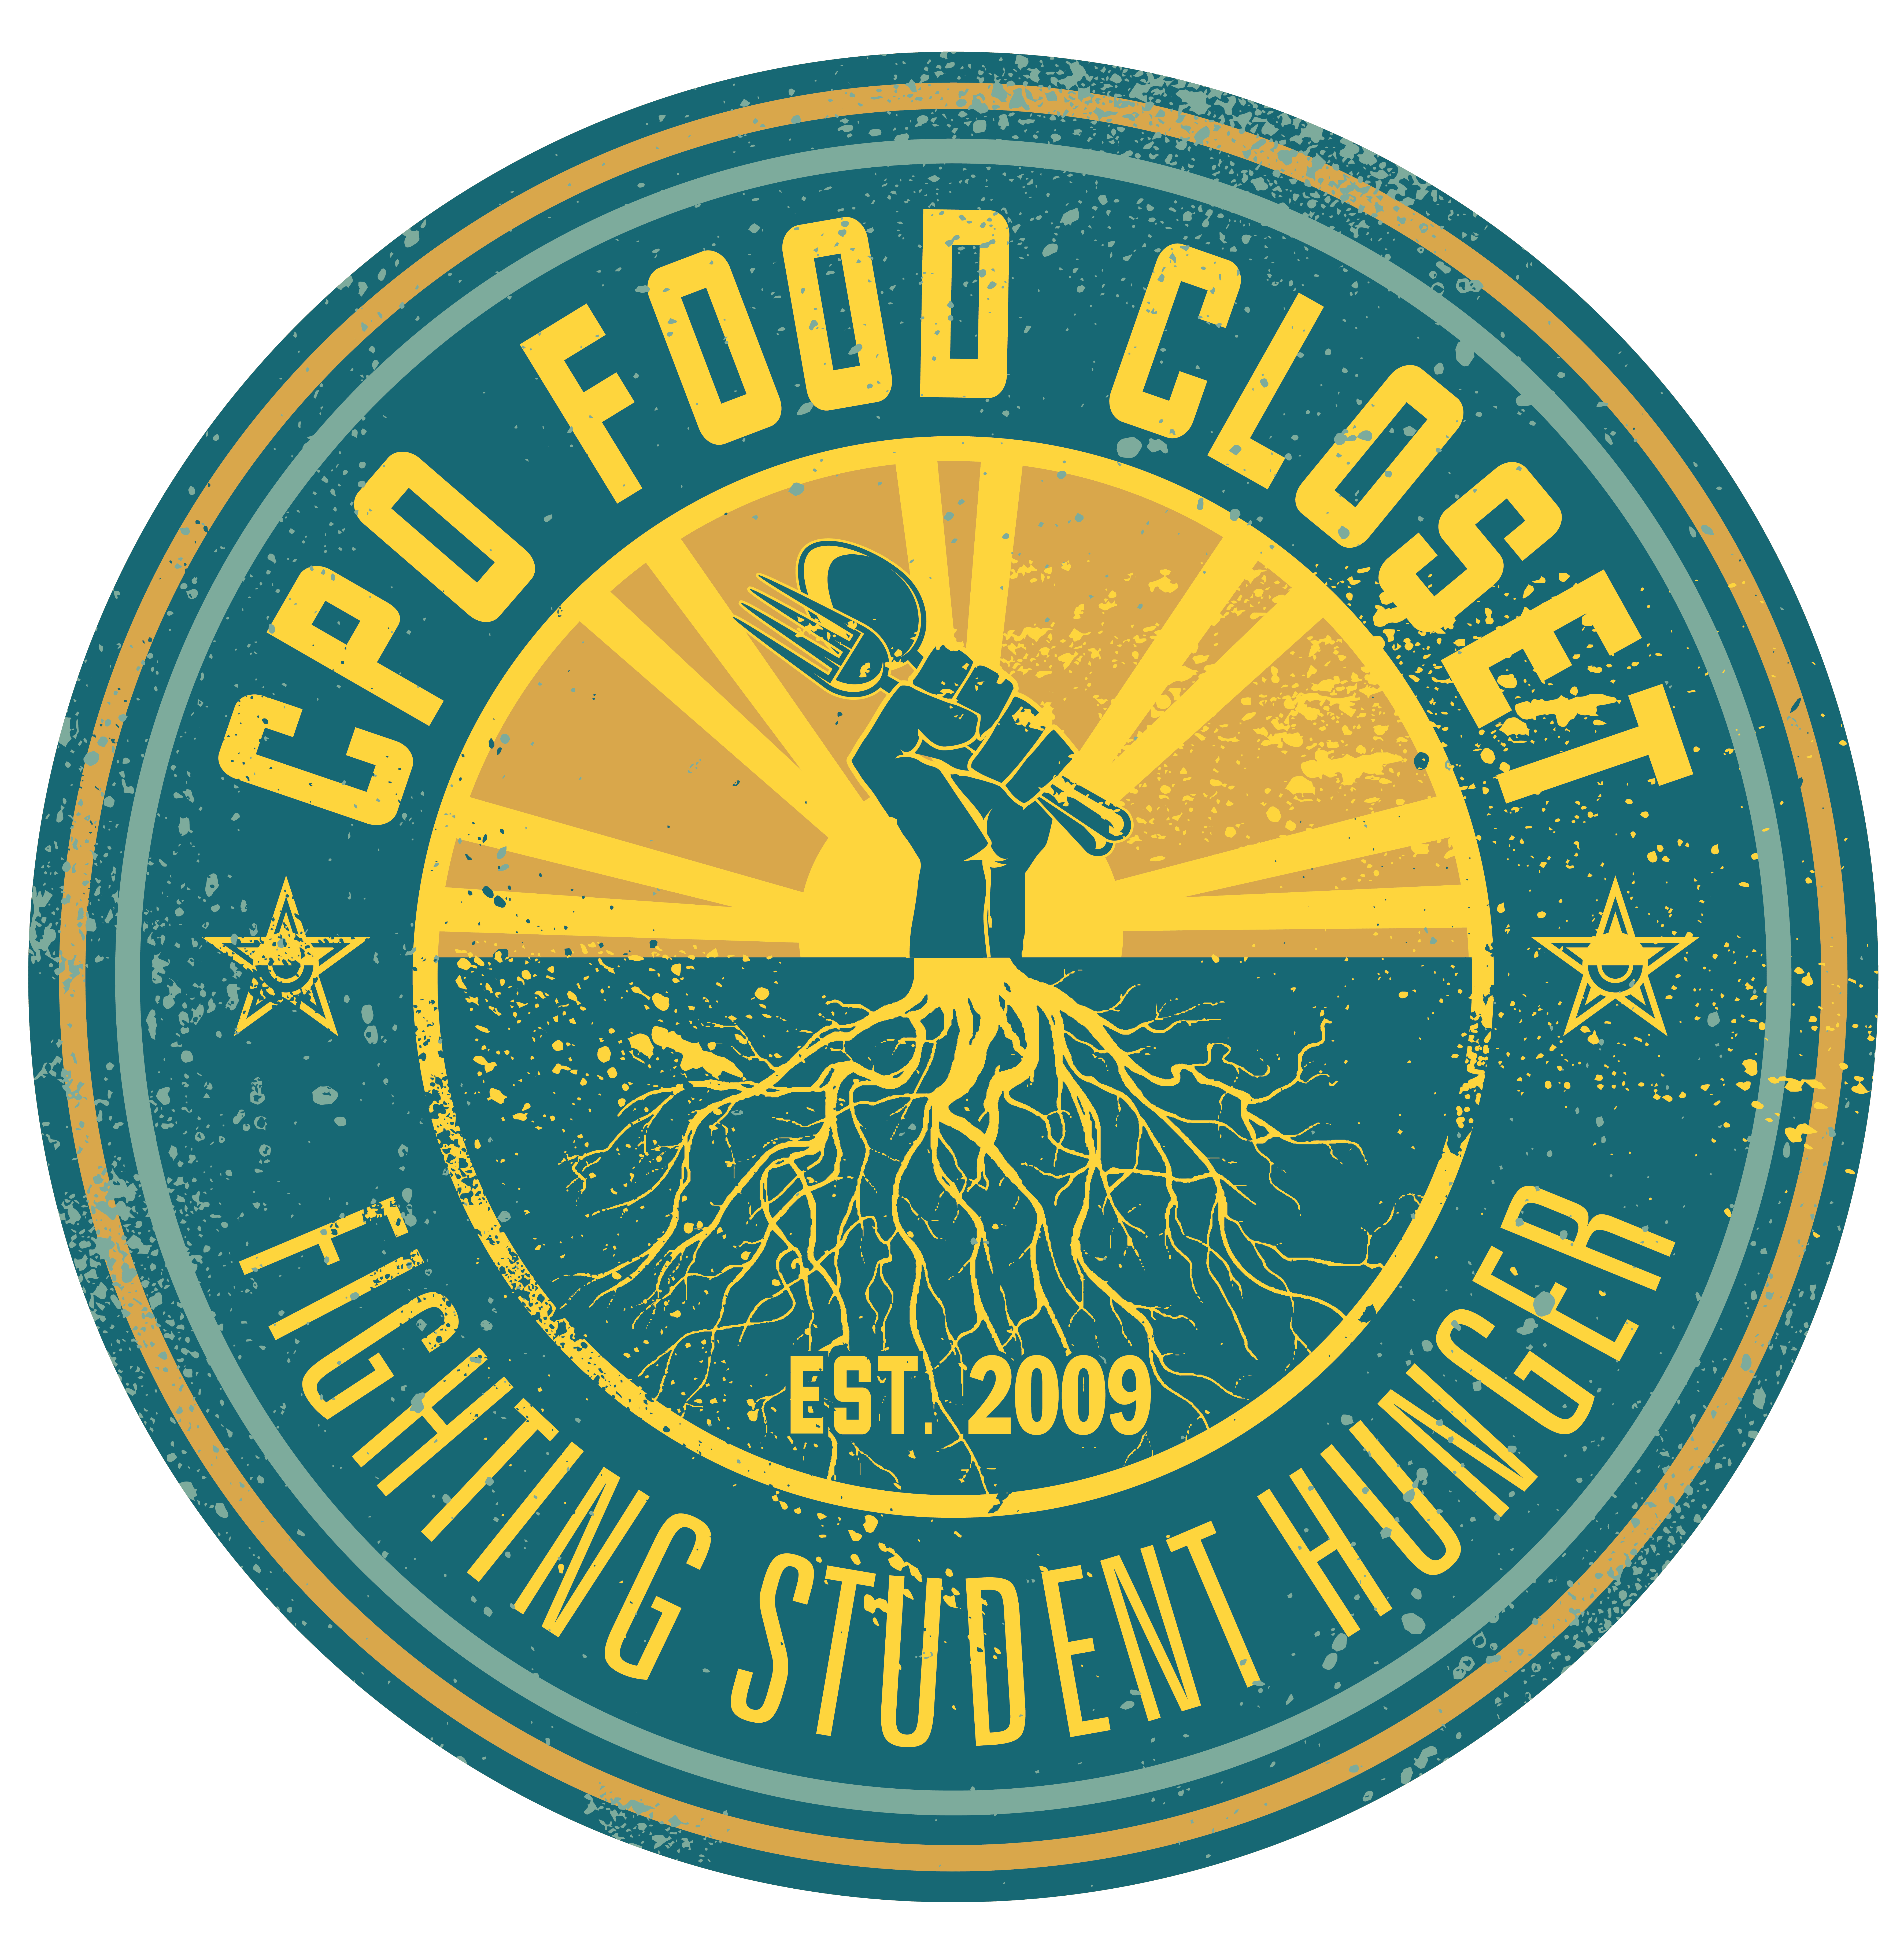 CPO Food Closet: Fighting Student Hunger